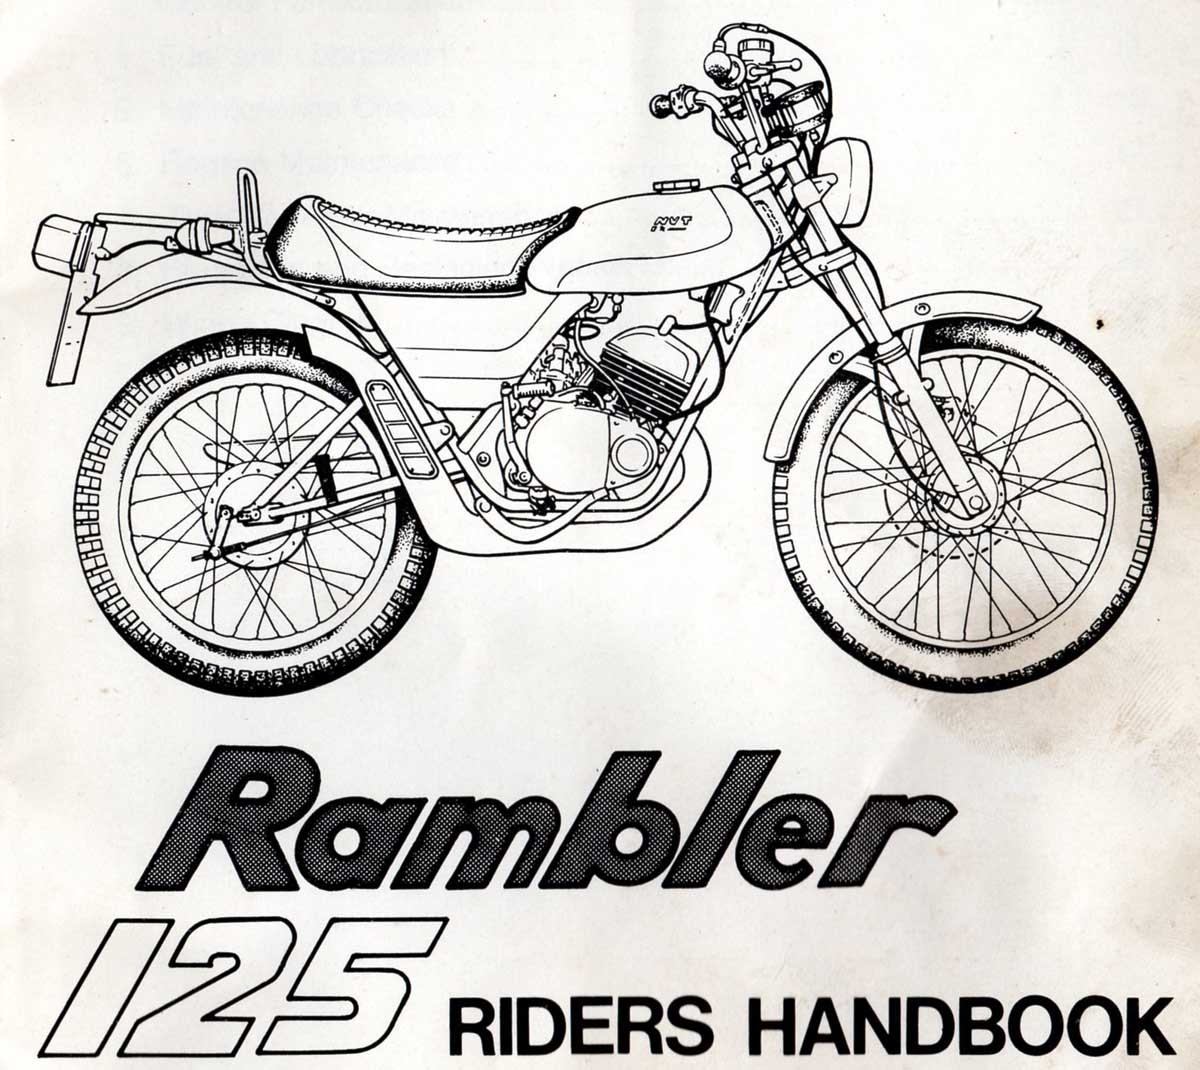 small resolution of wiring diagram for a 1979 yamaha dt 125 wiring diagram strcwiring diagram for a 1979 yamaha